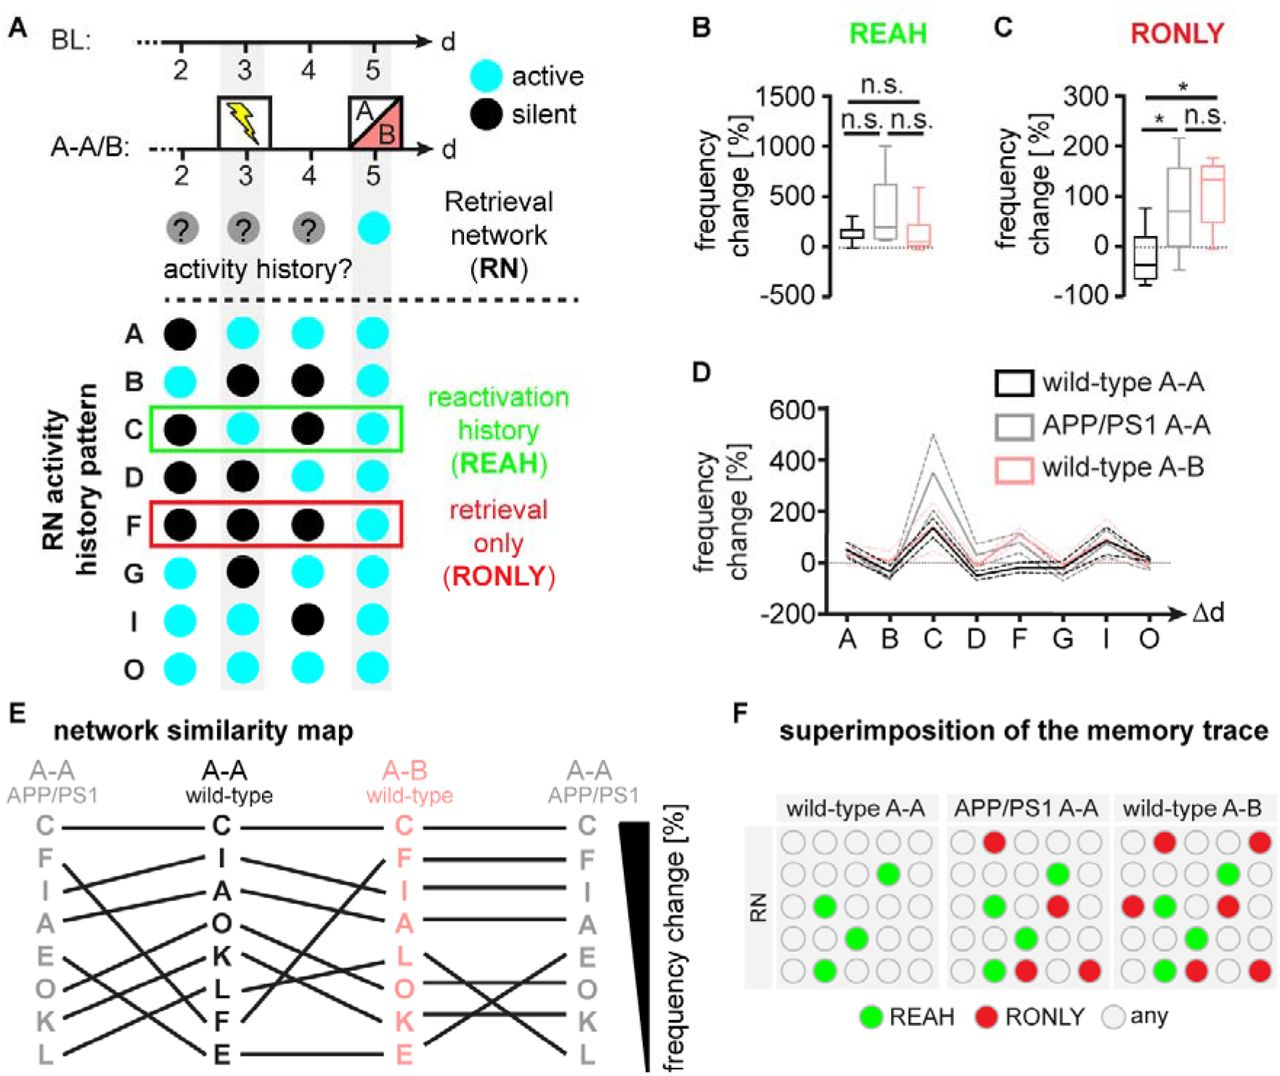 Memory trace superimposition impairs recall in a mouse model